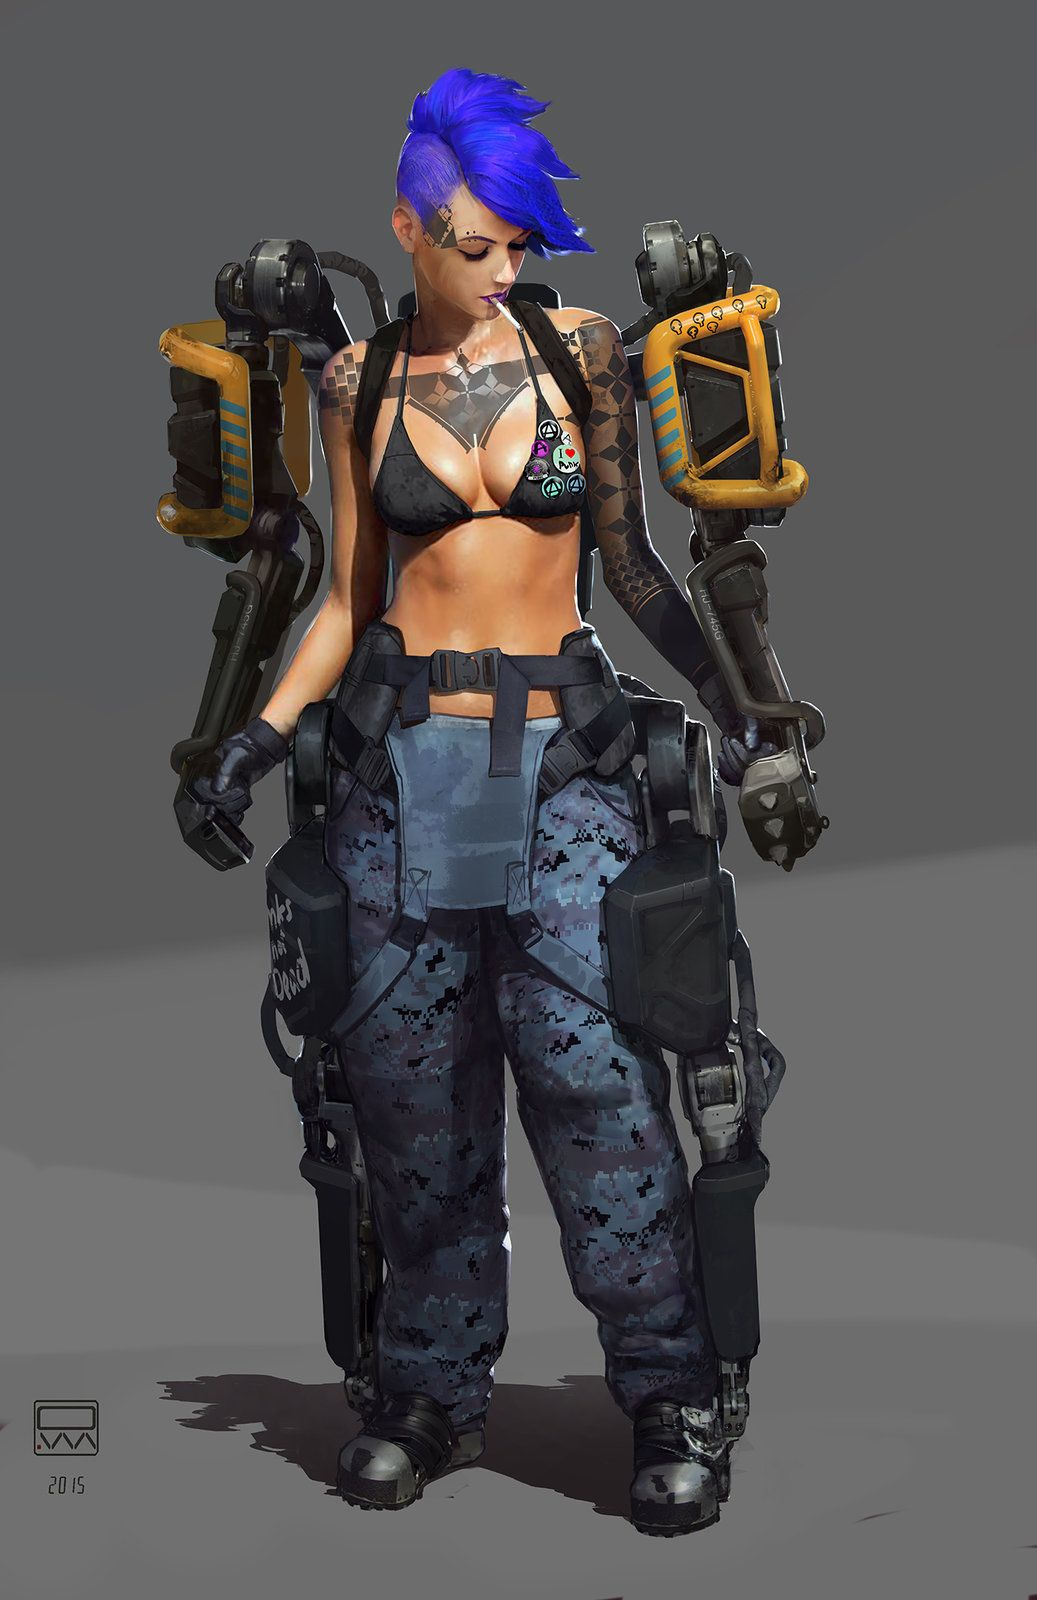 girl in exo, Mikhail Rakhmatullin on ArtStation at https://www.artstation.com/artwork/girl-in-exo